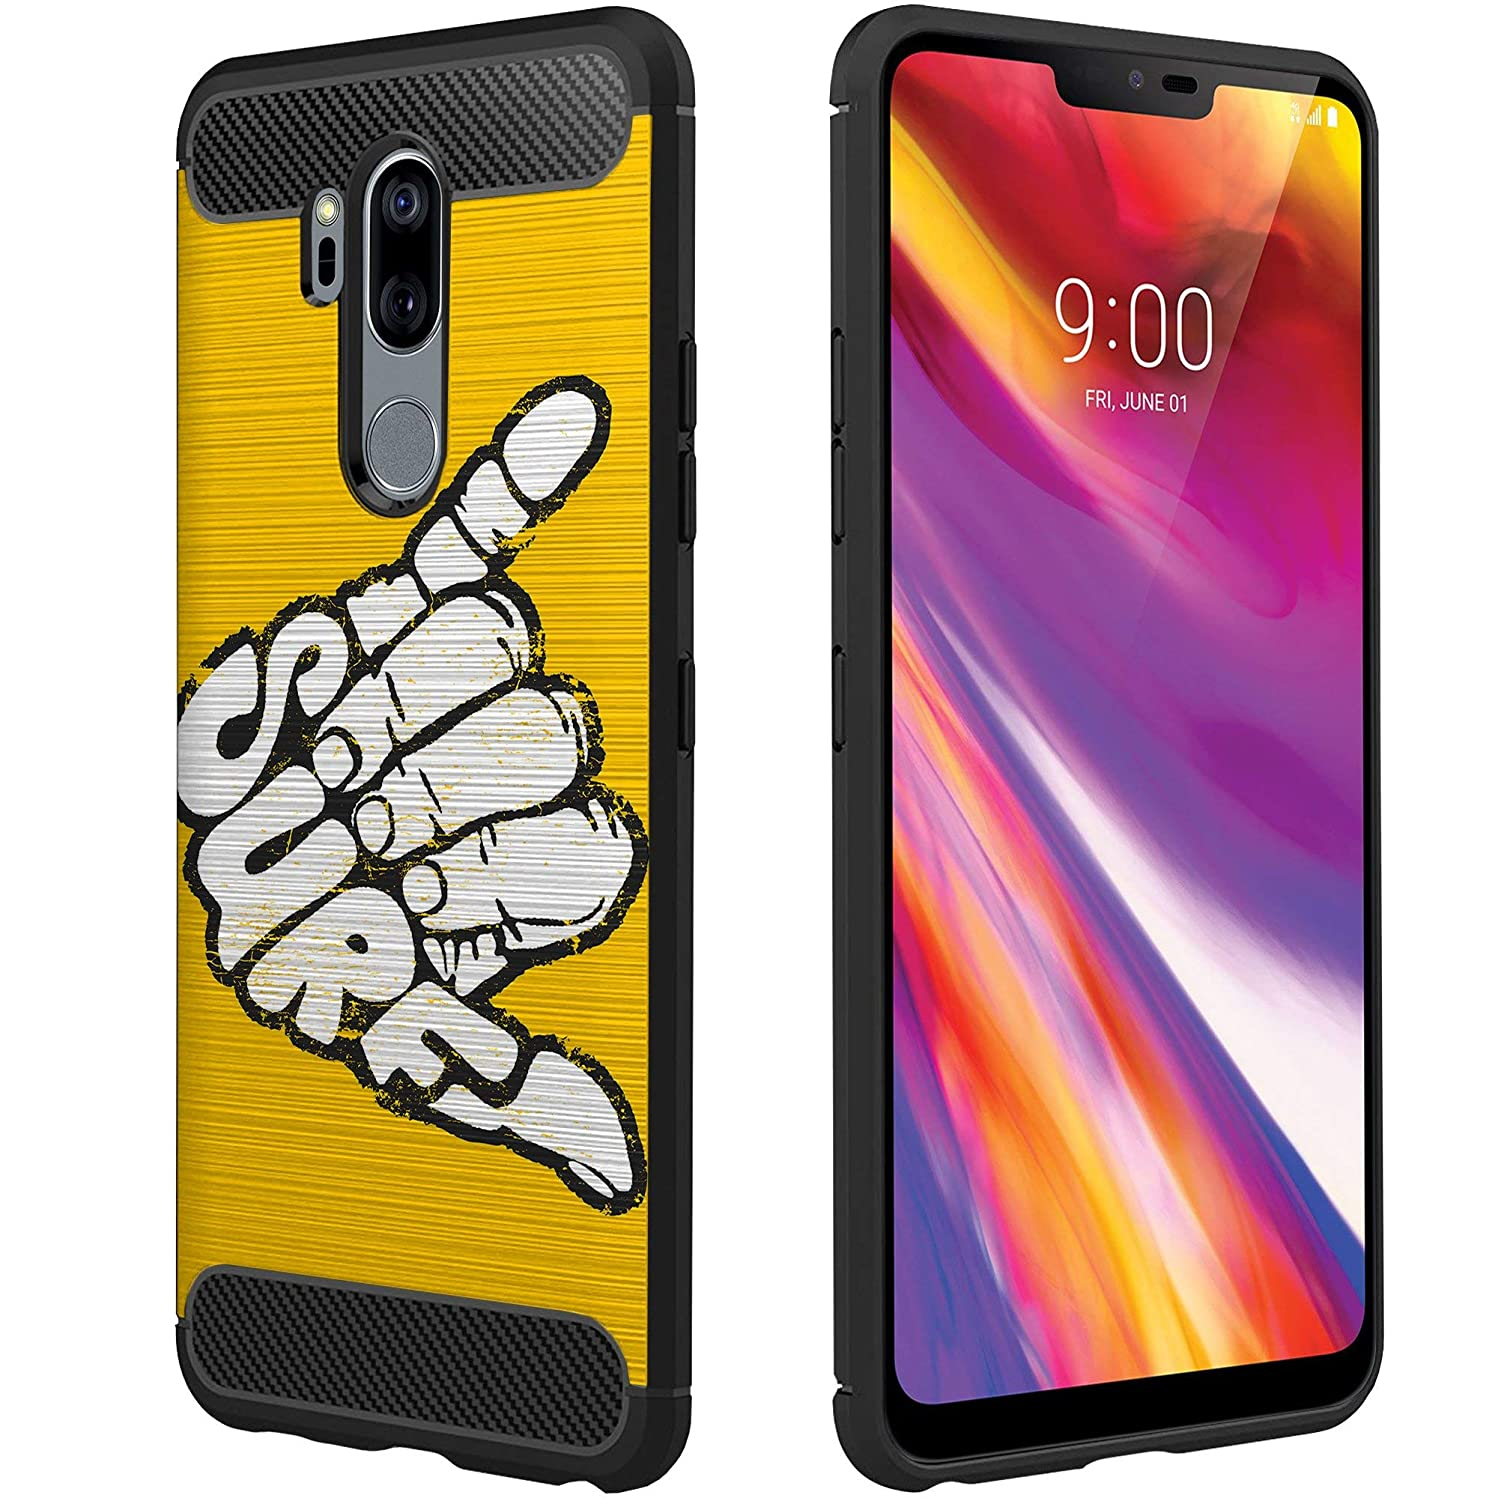 OmyBloom Light Flex Case Compatible for LG G7 ThinQ/LG G7 | Beach Vibes Design Phone Case for LG G7 - Surf's Up